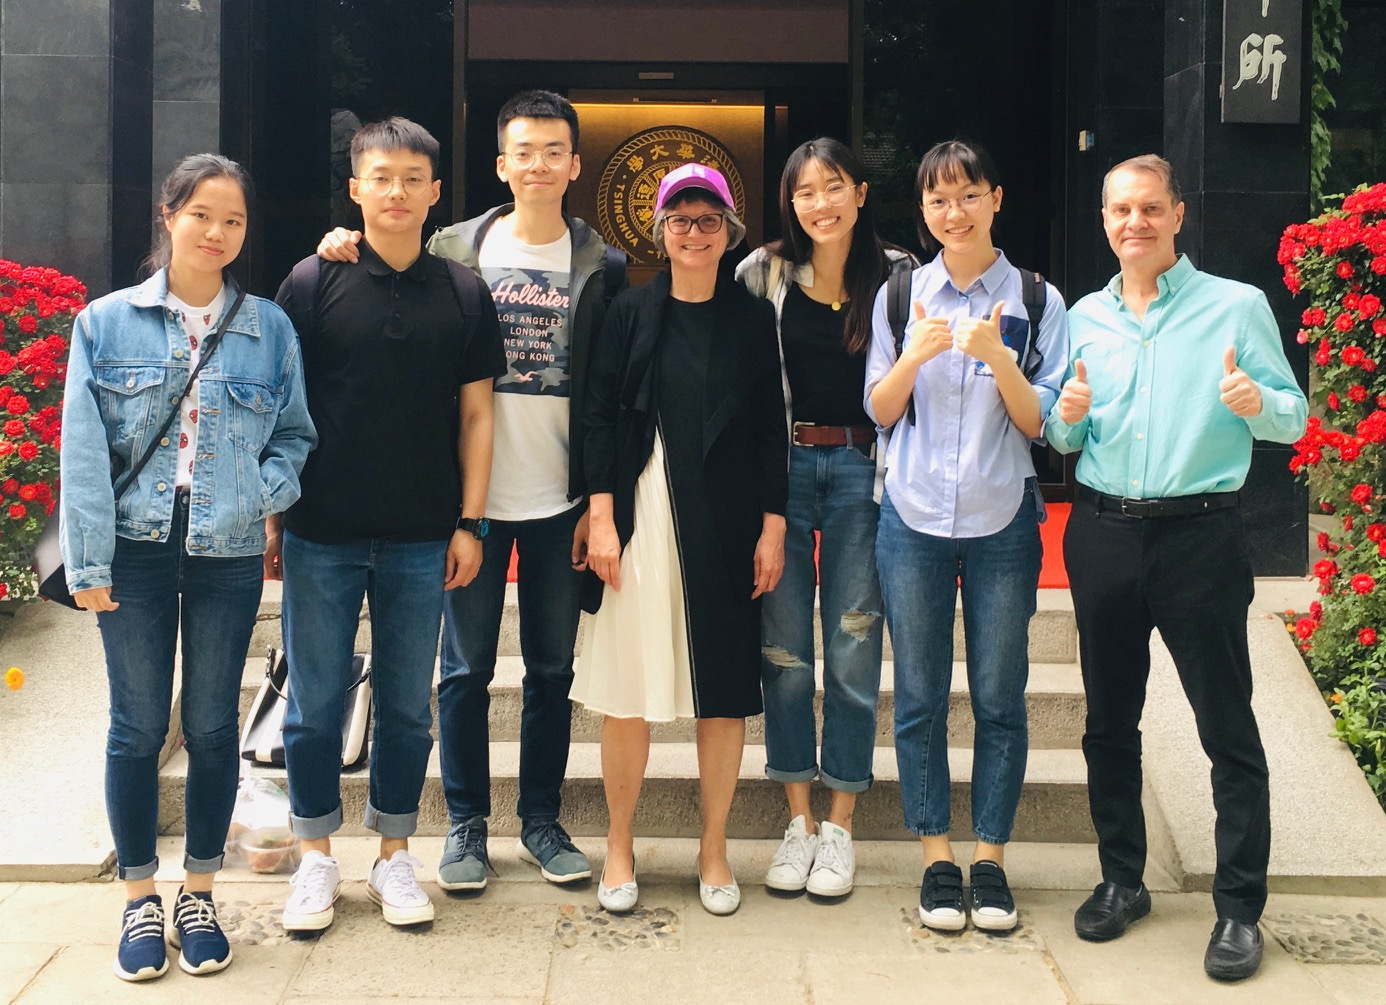 Chinese star students learn financial journalism in Bloomberg